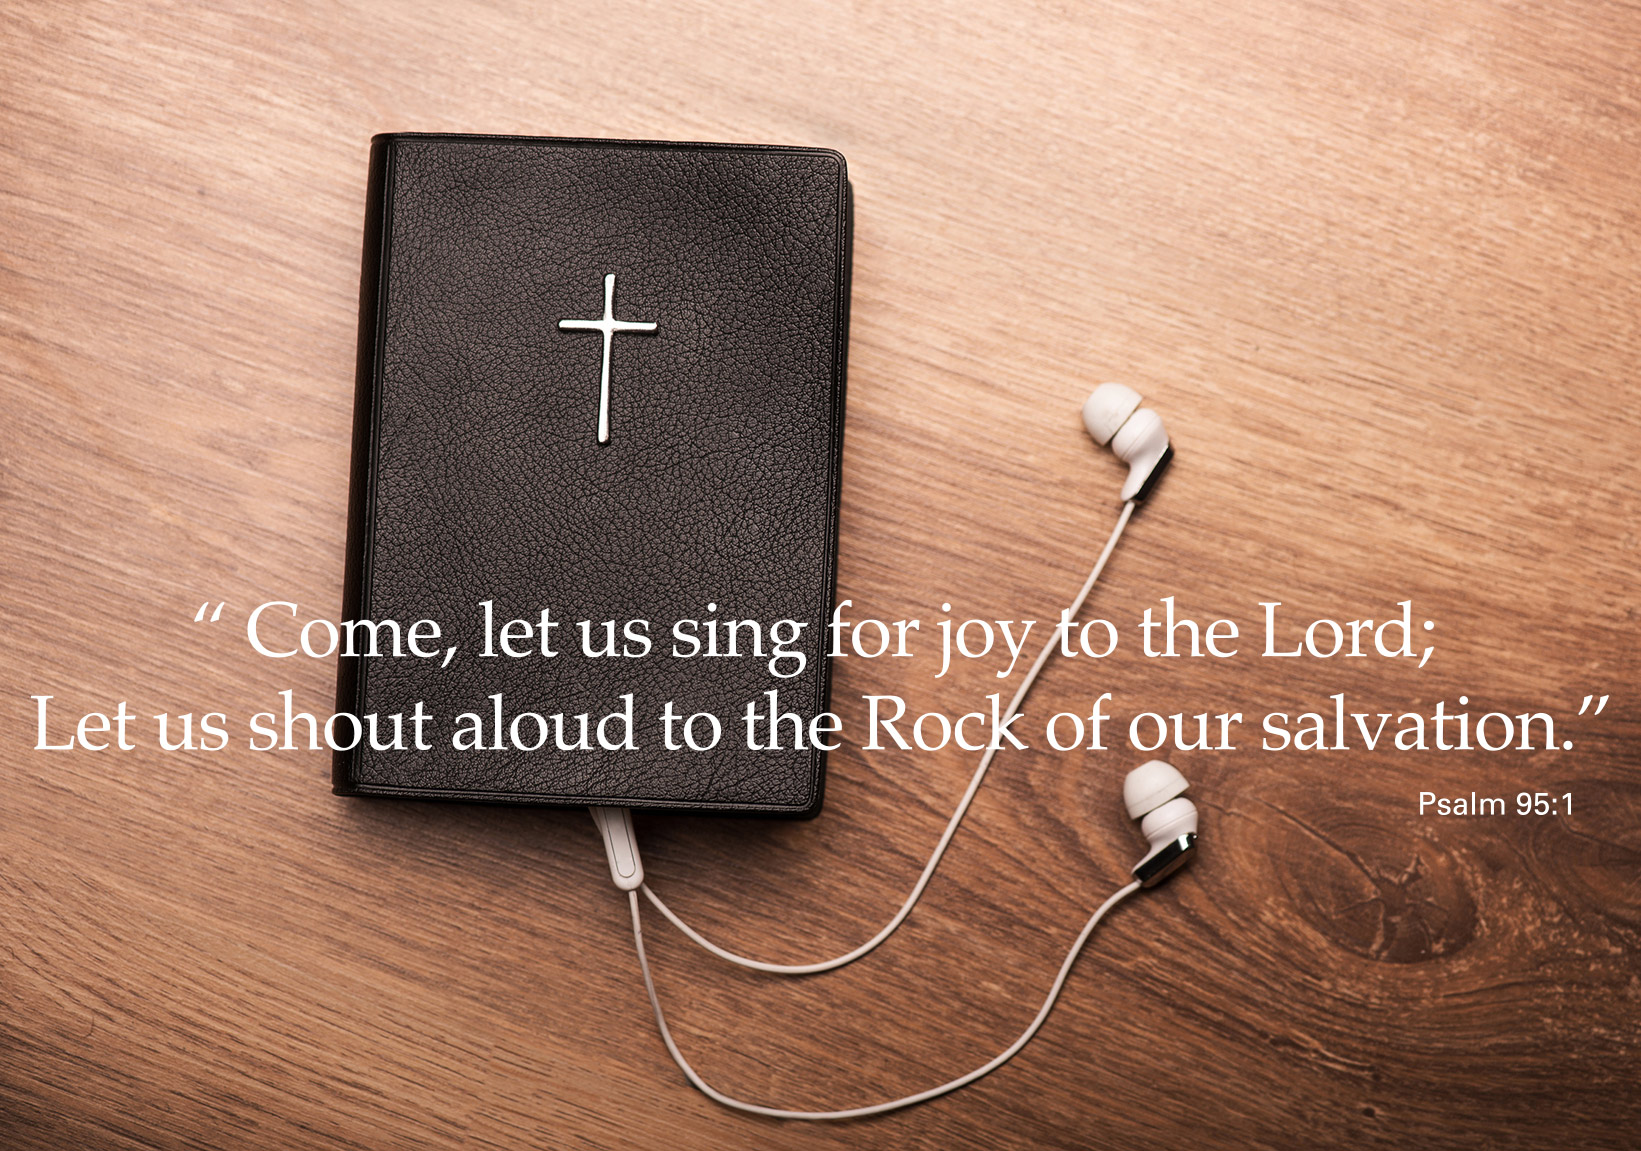 Come, let us sing for joy to the Lord; Let us shout aloud to the Rock of our salvation - Psalm 95:1